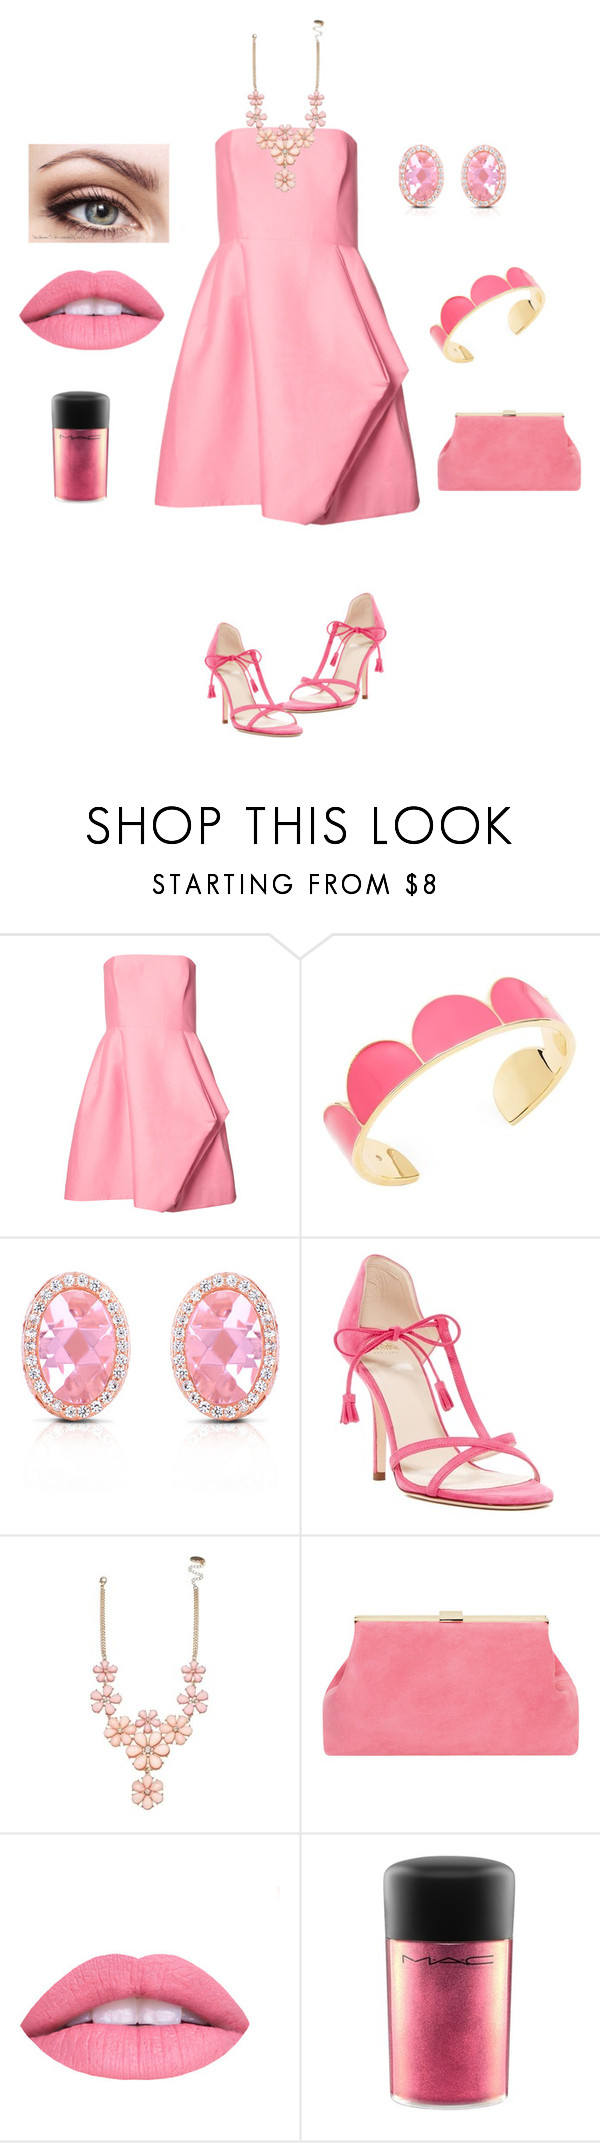 """""""Untitled #24"""" by briarbebeauty ❤ liked on Polyvore featuring Halston Heritage, Kate Spade, Collette Z, Frances Valentine, Mansur Gavriel, L.A. Girl and MAC Cosmetics"""